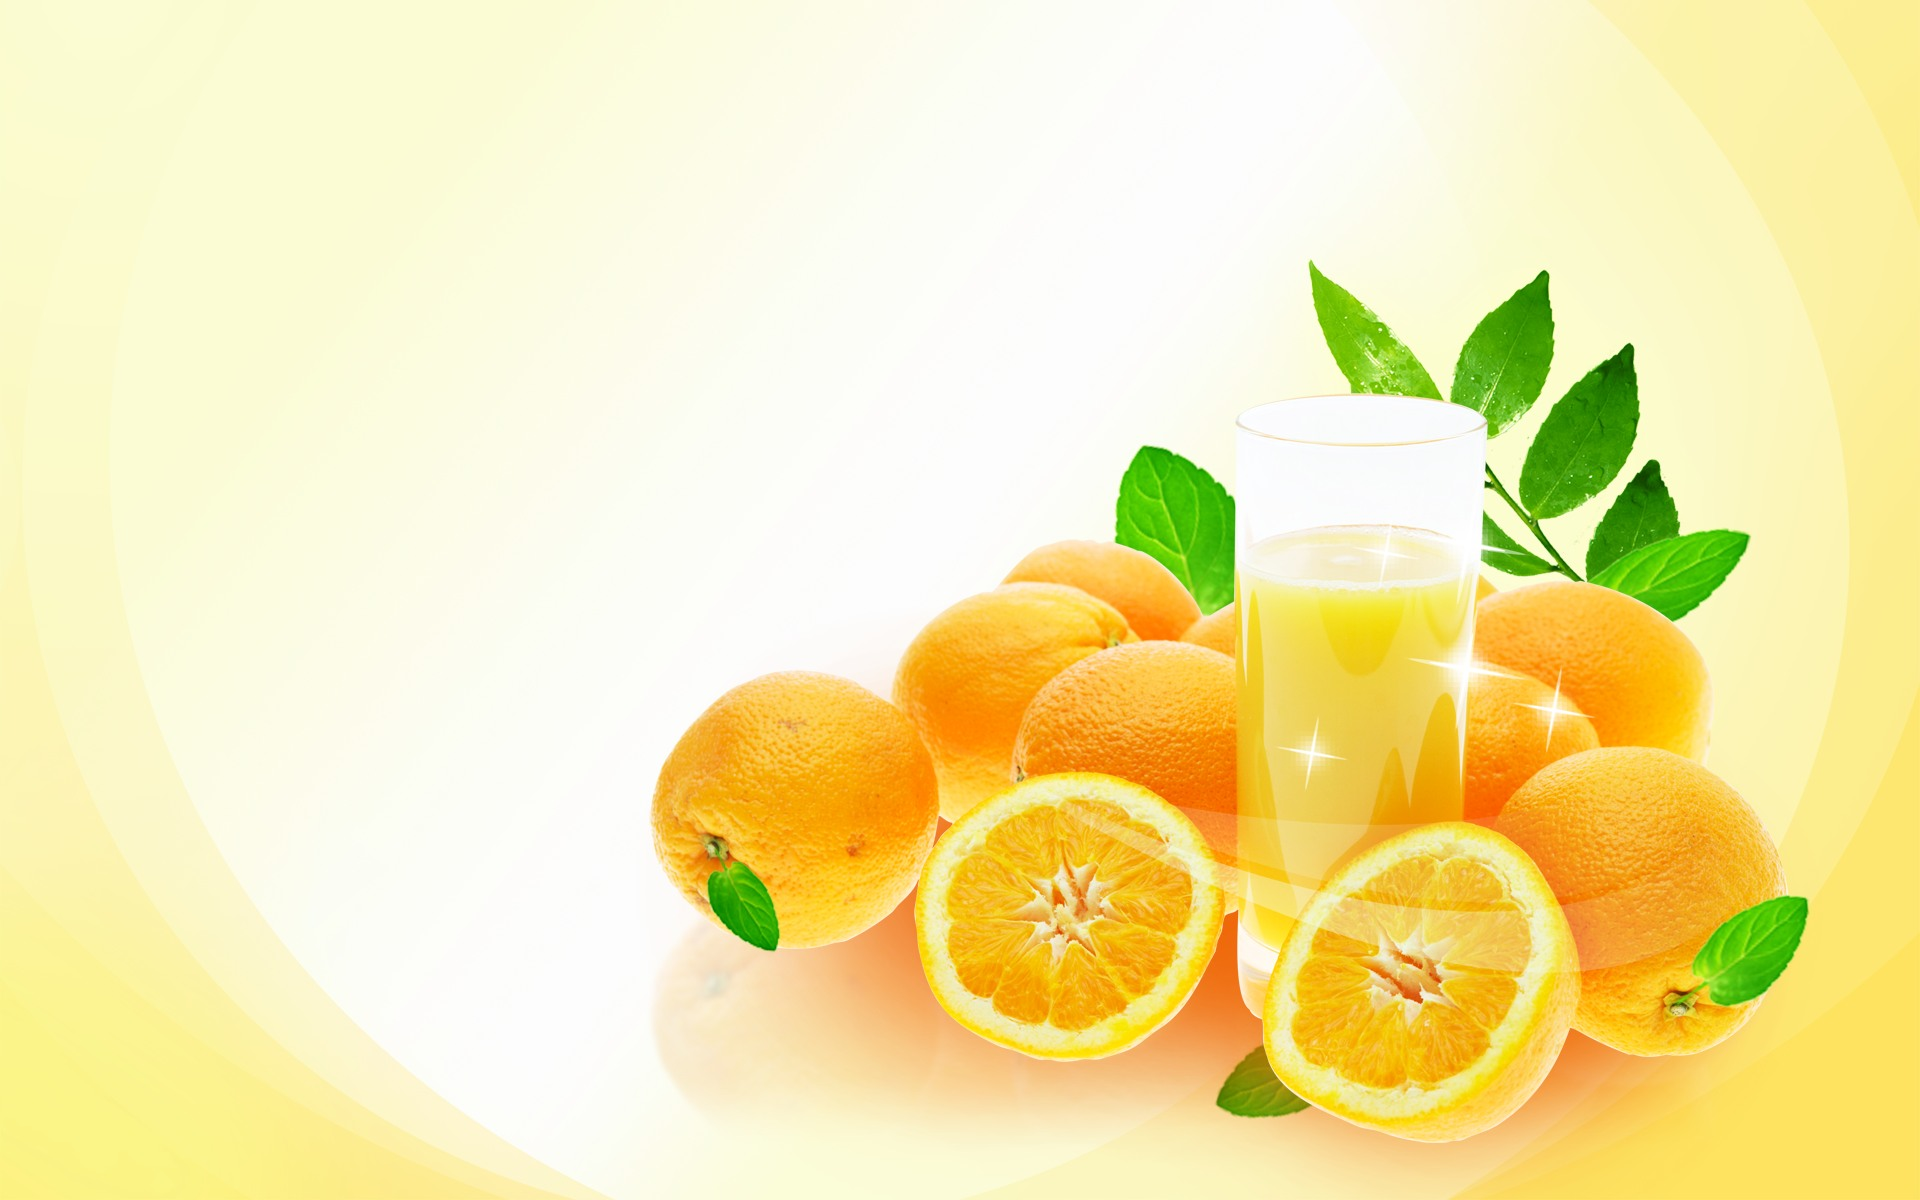 Download wallpaper orange juice photo Oranges orange 1920x1200